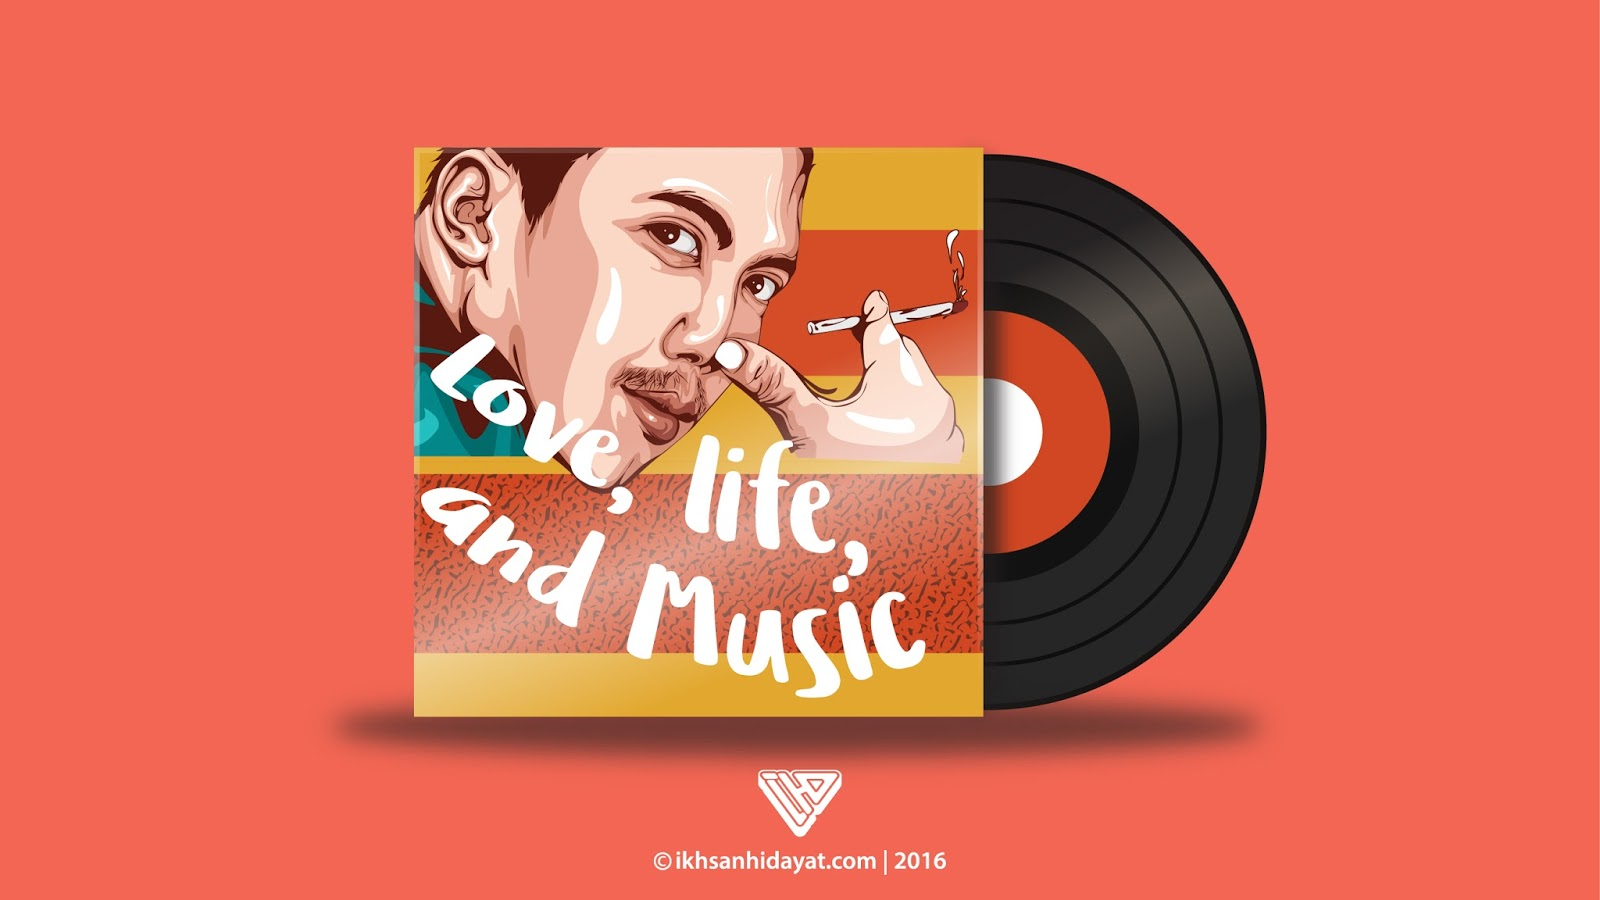 creating vinyl record - illustrator tutorials for beginners | ikhsan